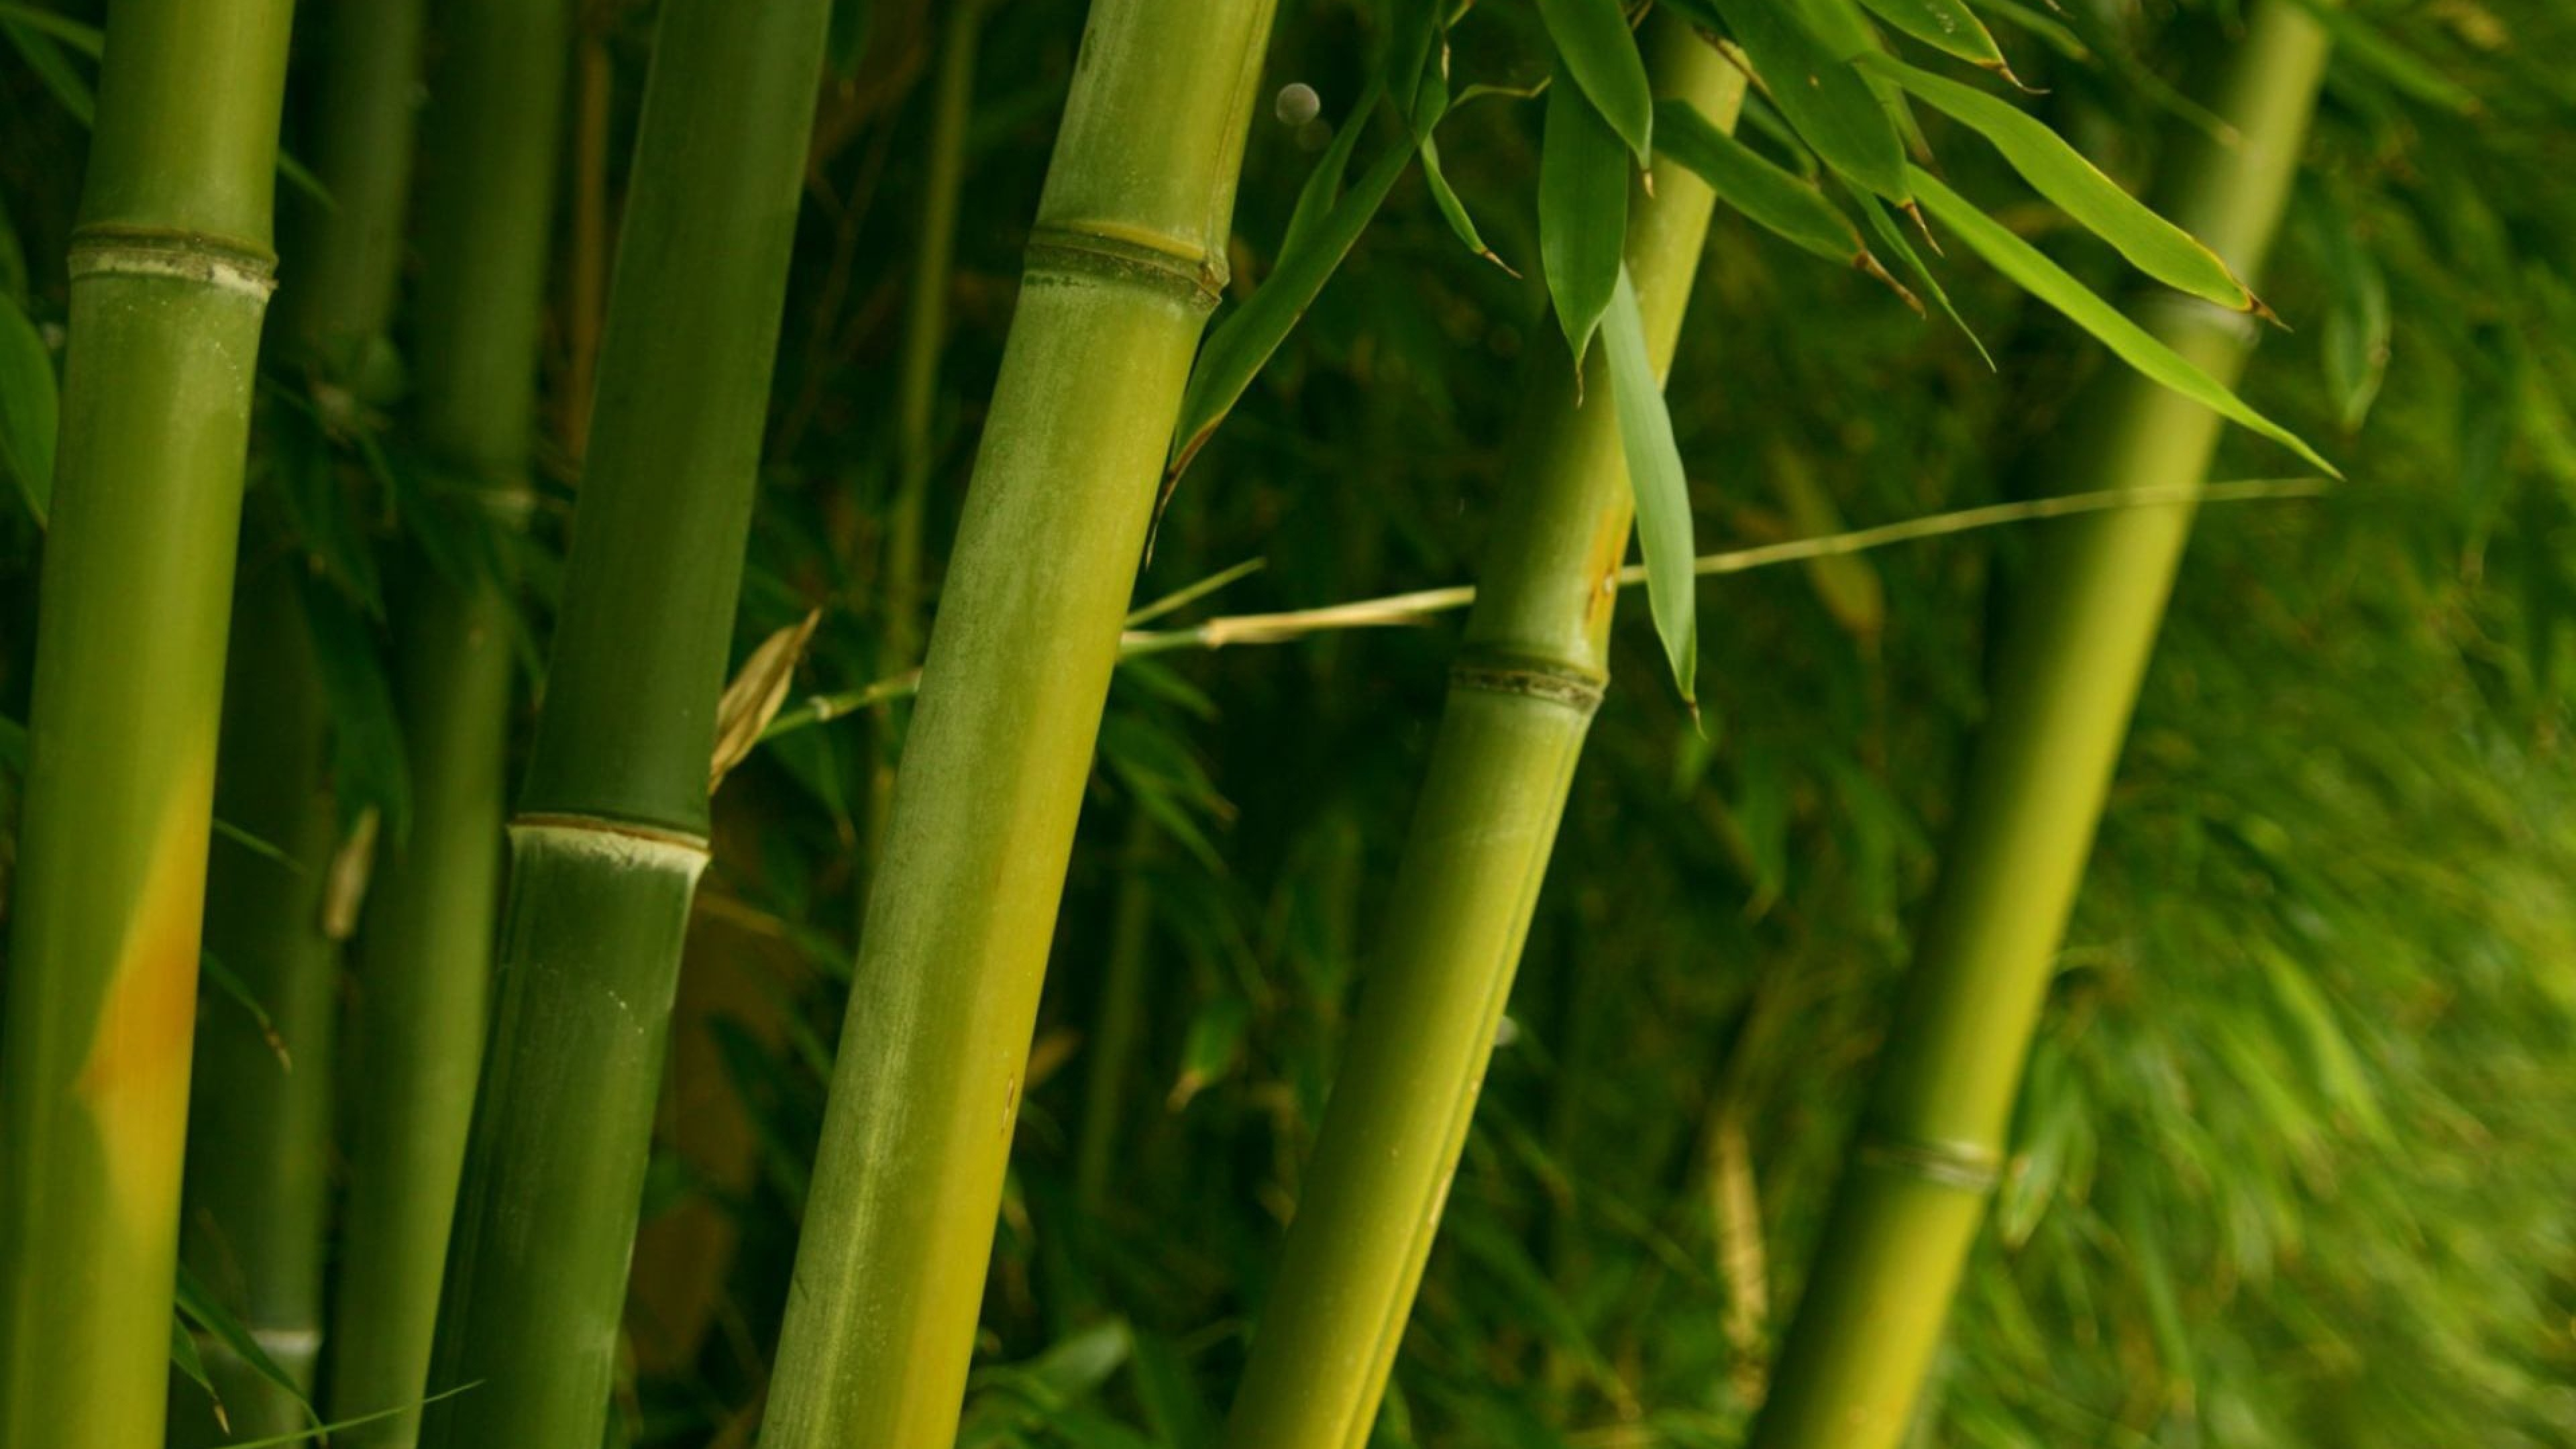 3840x2160 Free-Desktop-Bamboo-Wallpaper-HD